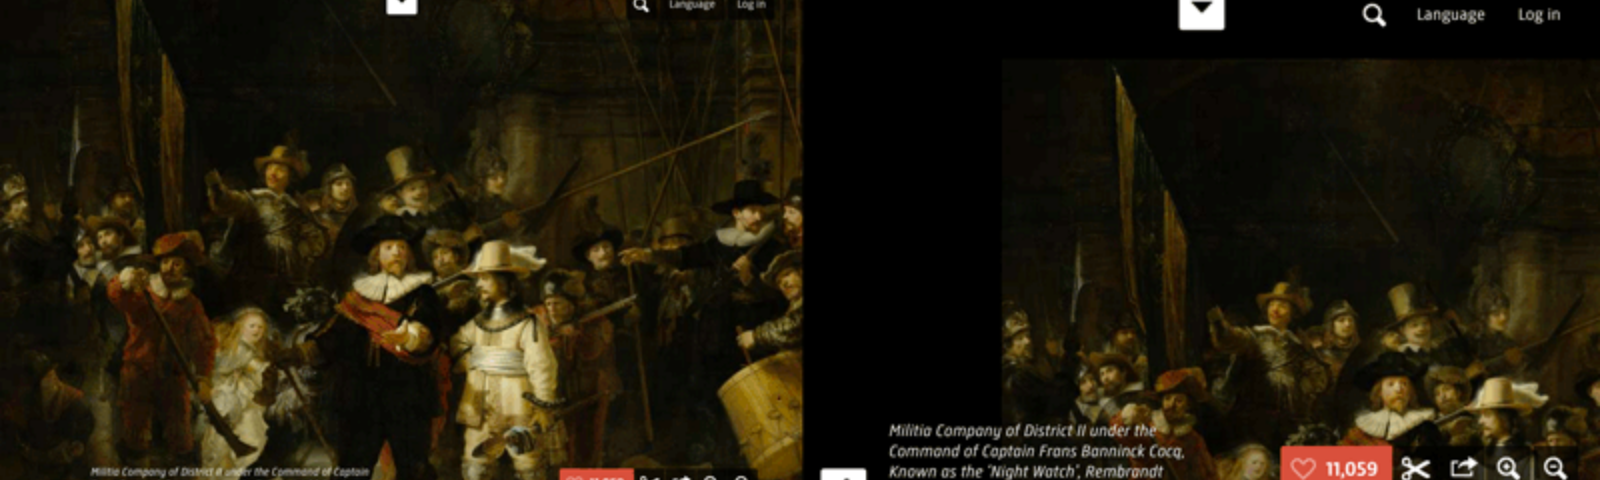 Image of The Night Watch, showing some issues with layout when the page is zoomed in to 150%